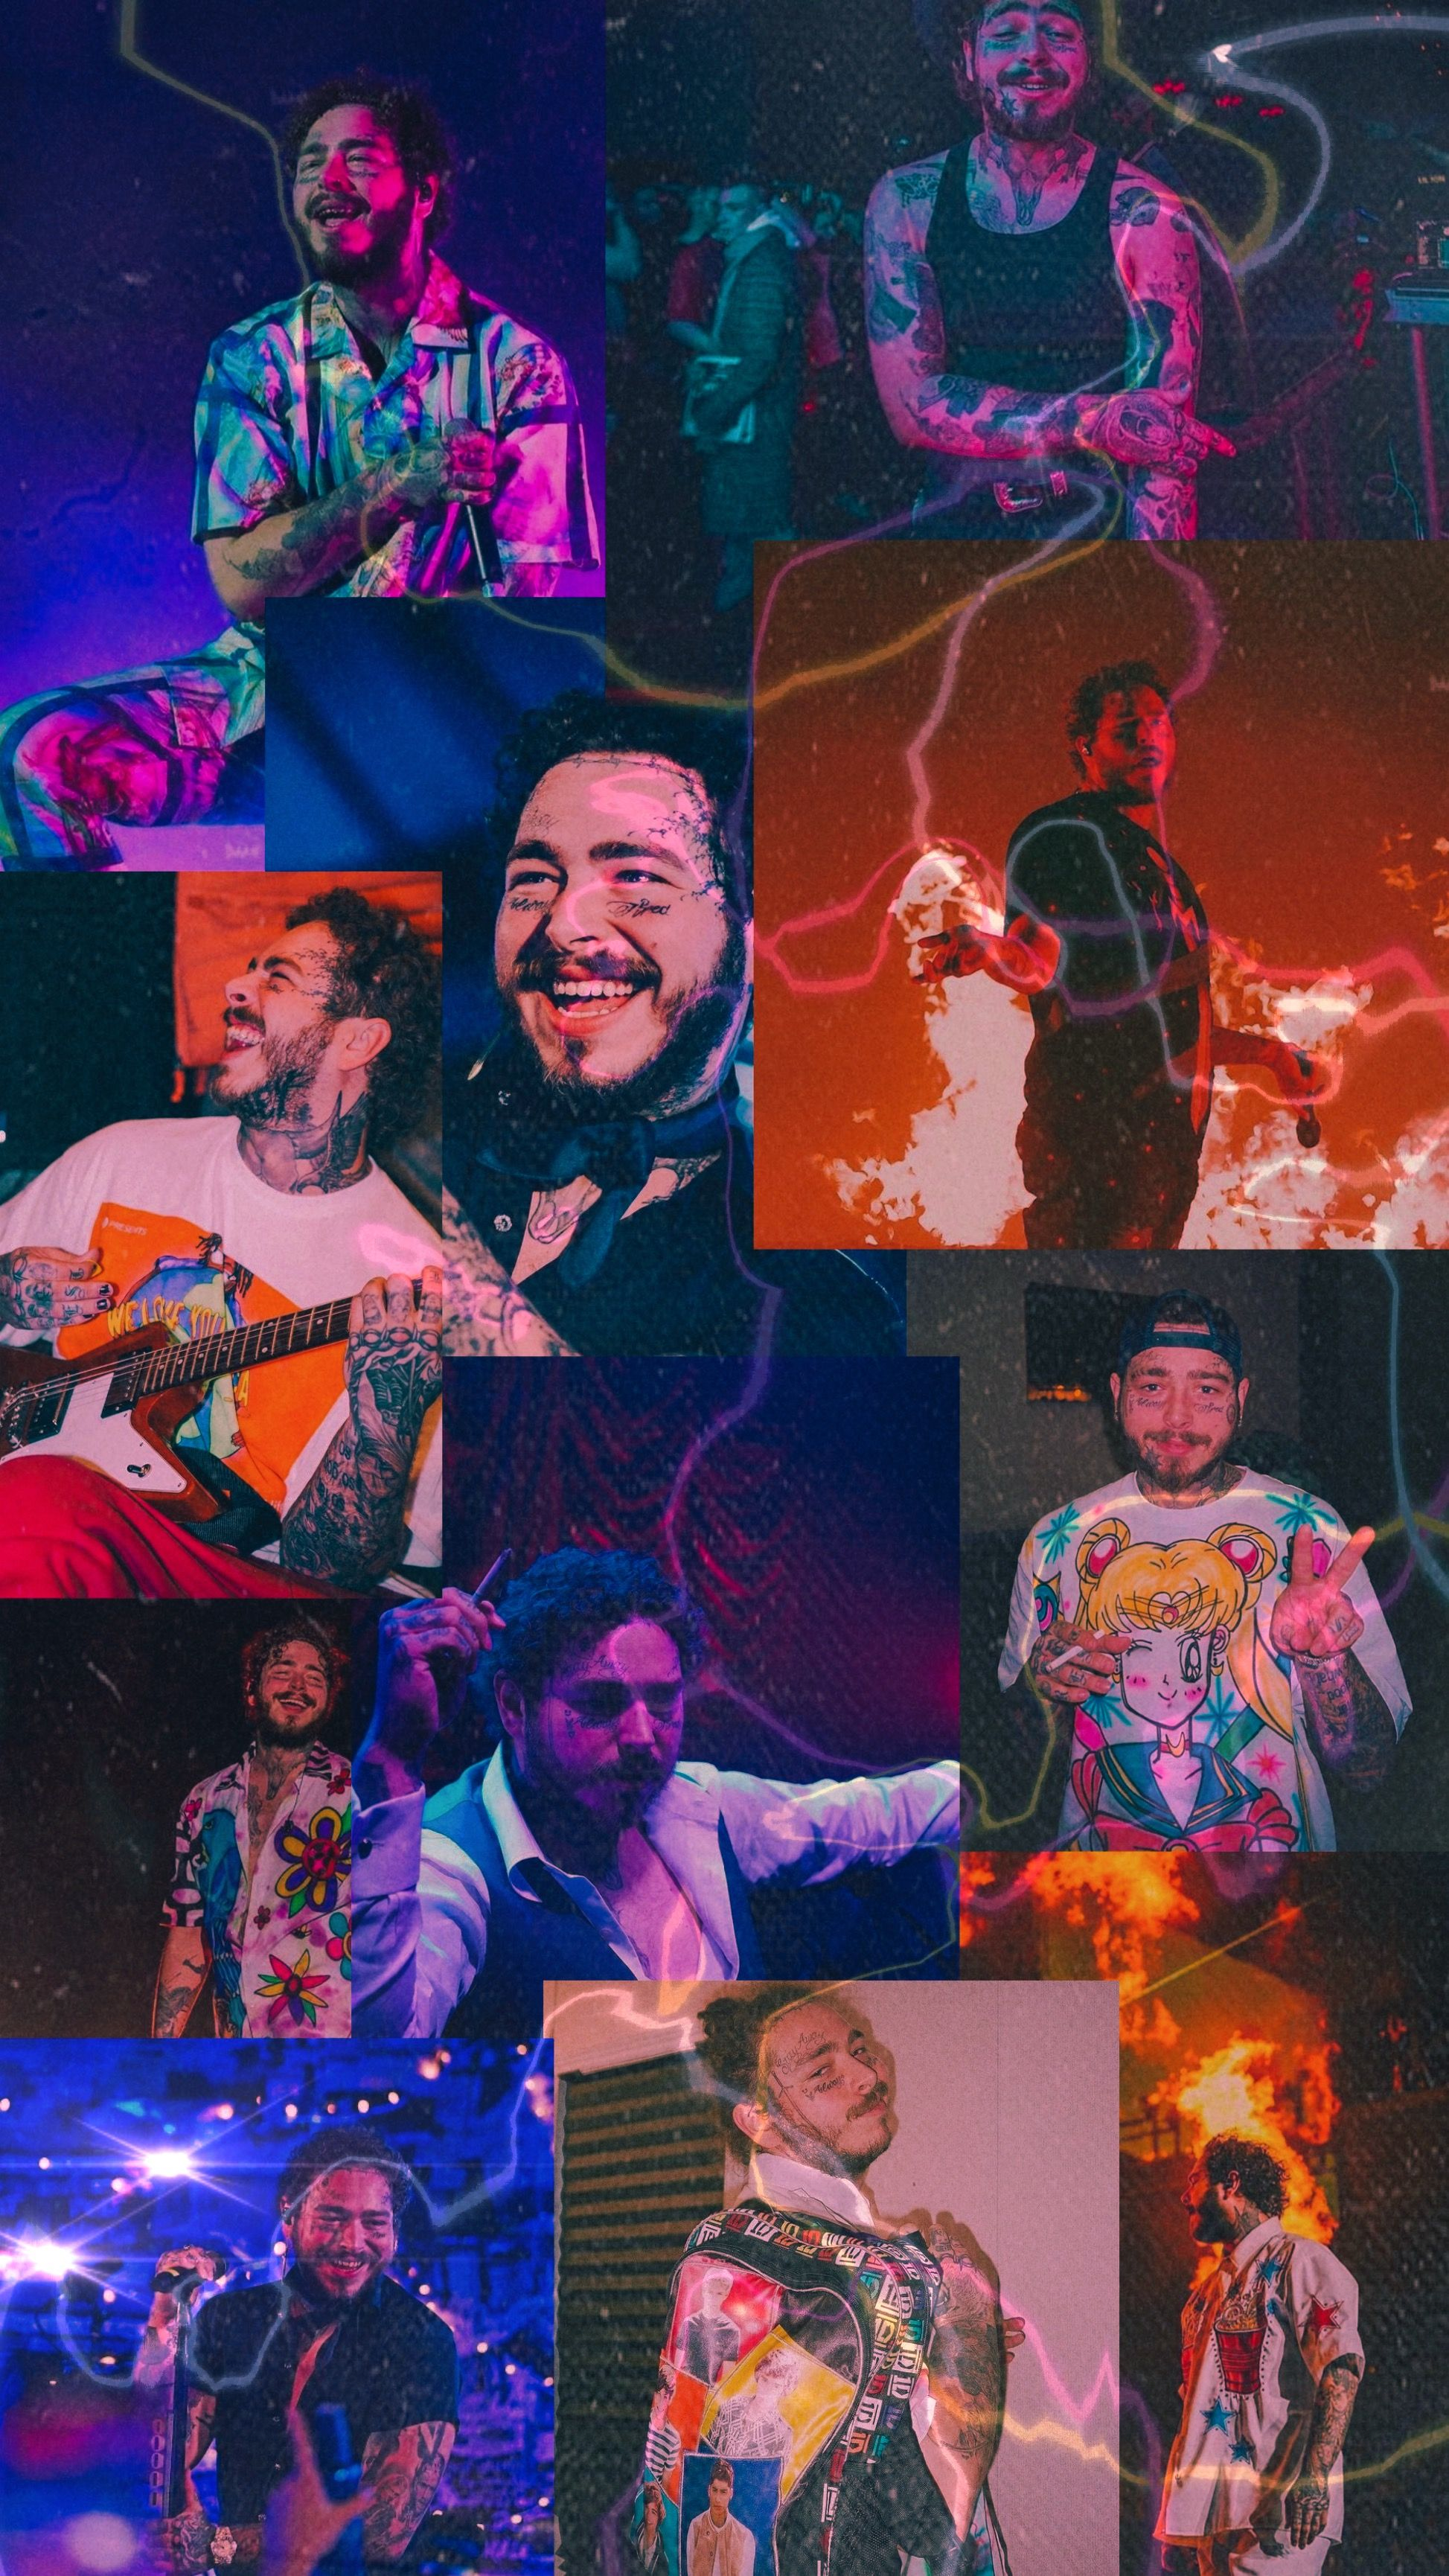 Pin by ⒺⓂ🖤 on Post malone in 2020 Post malone wallpaper